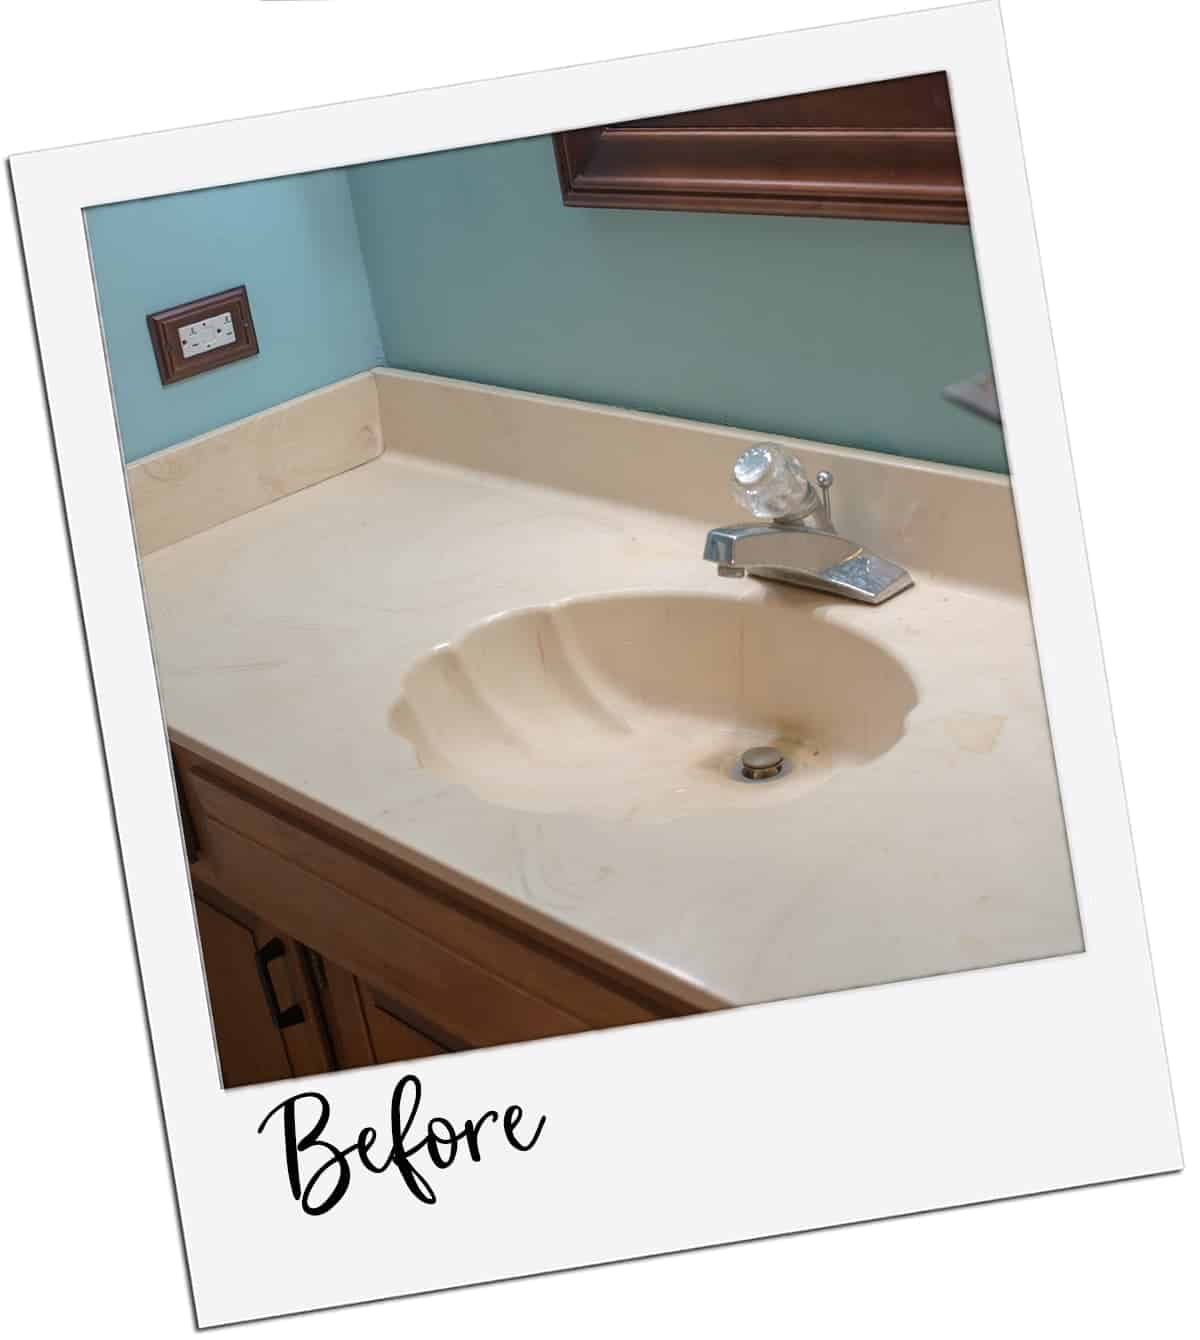 Installing a new vanity top - Before pic of 80's style seashell sink and blue walls.